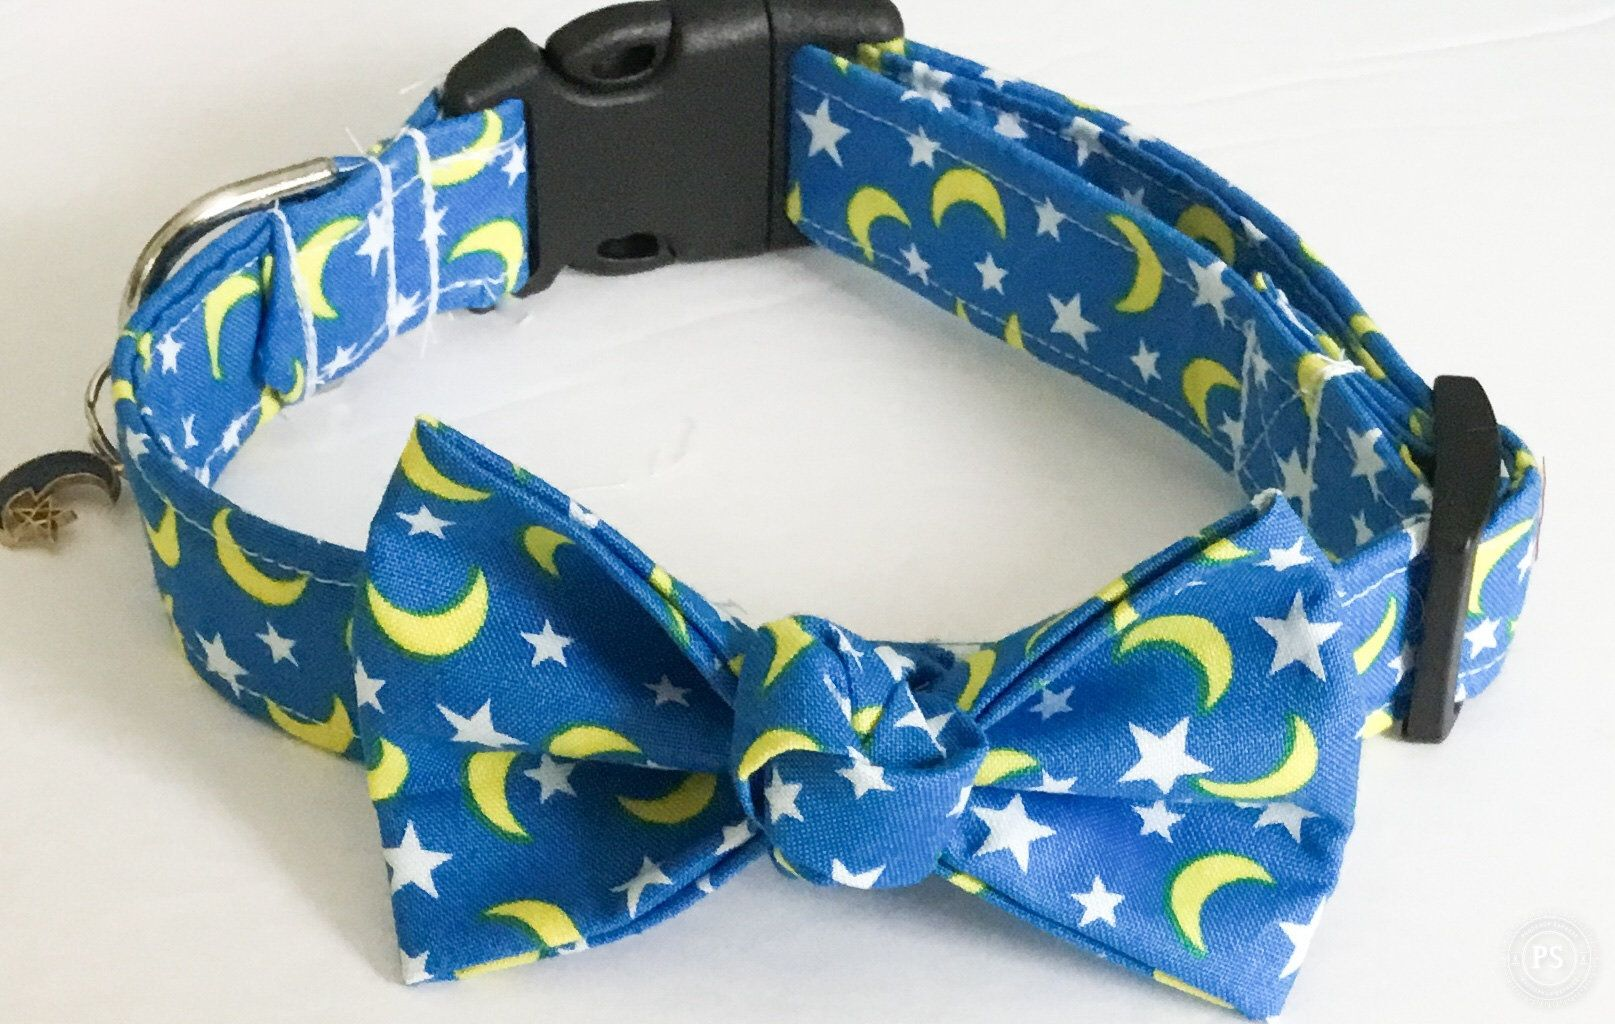 Blue Celestial Moon and Stars Collar with Matching Bow and